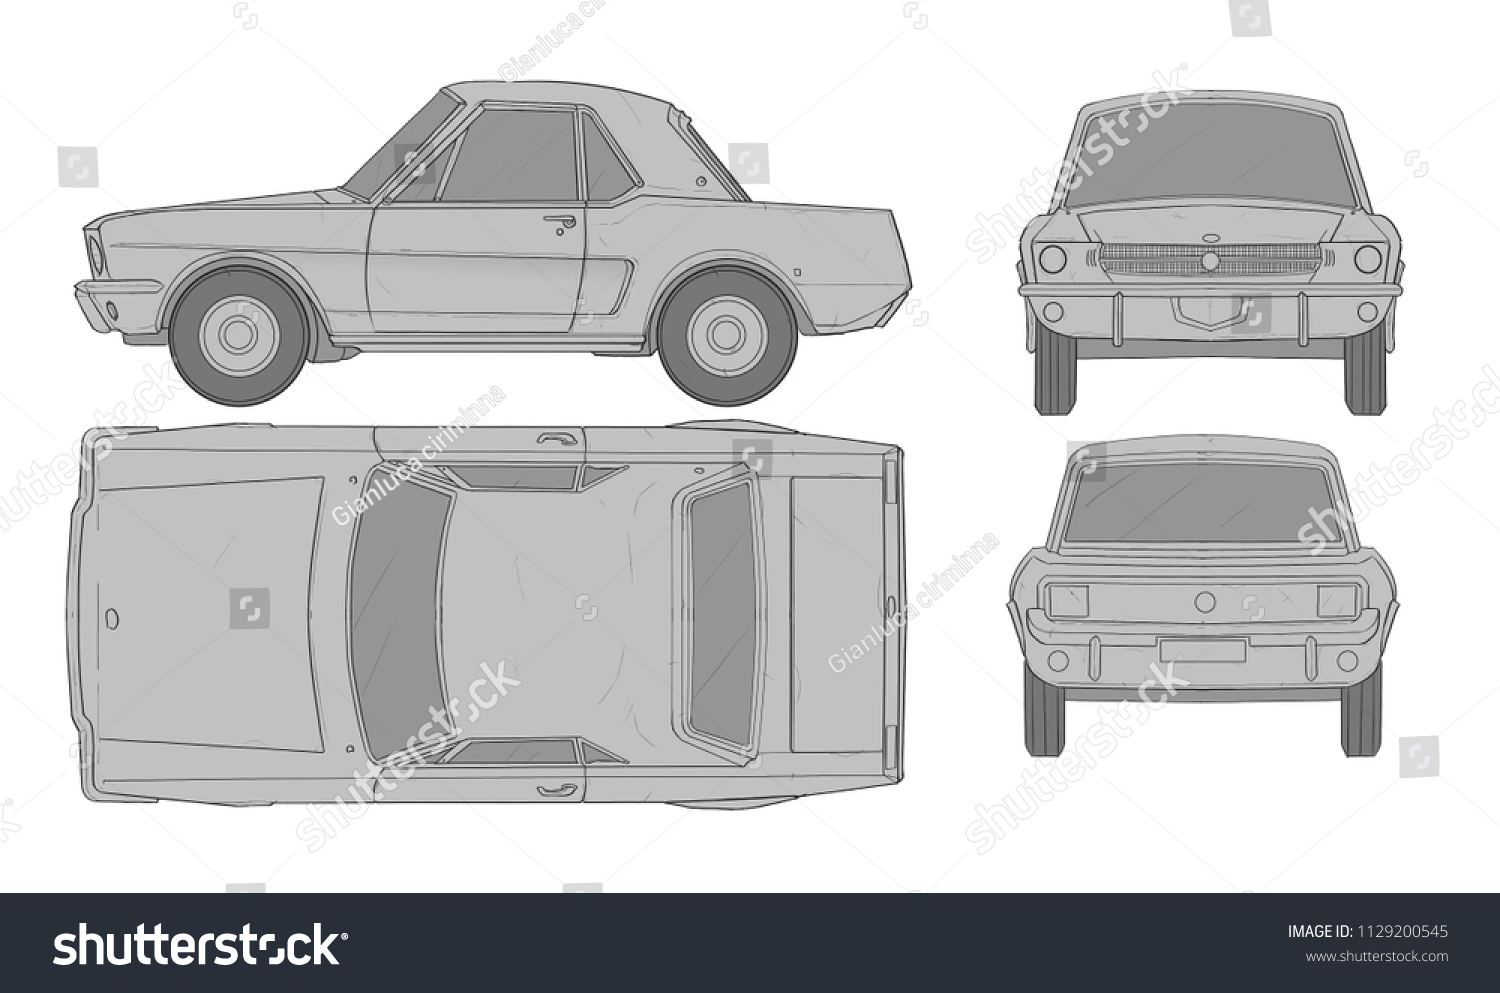 Cartoon car blueprint 3 d modeling stock illustration 1129200545 cartoon car blueprint for 3d modeling malvernweather Image collections